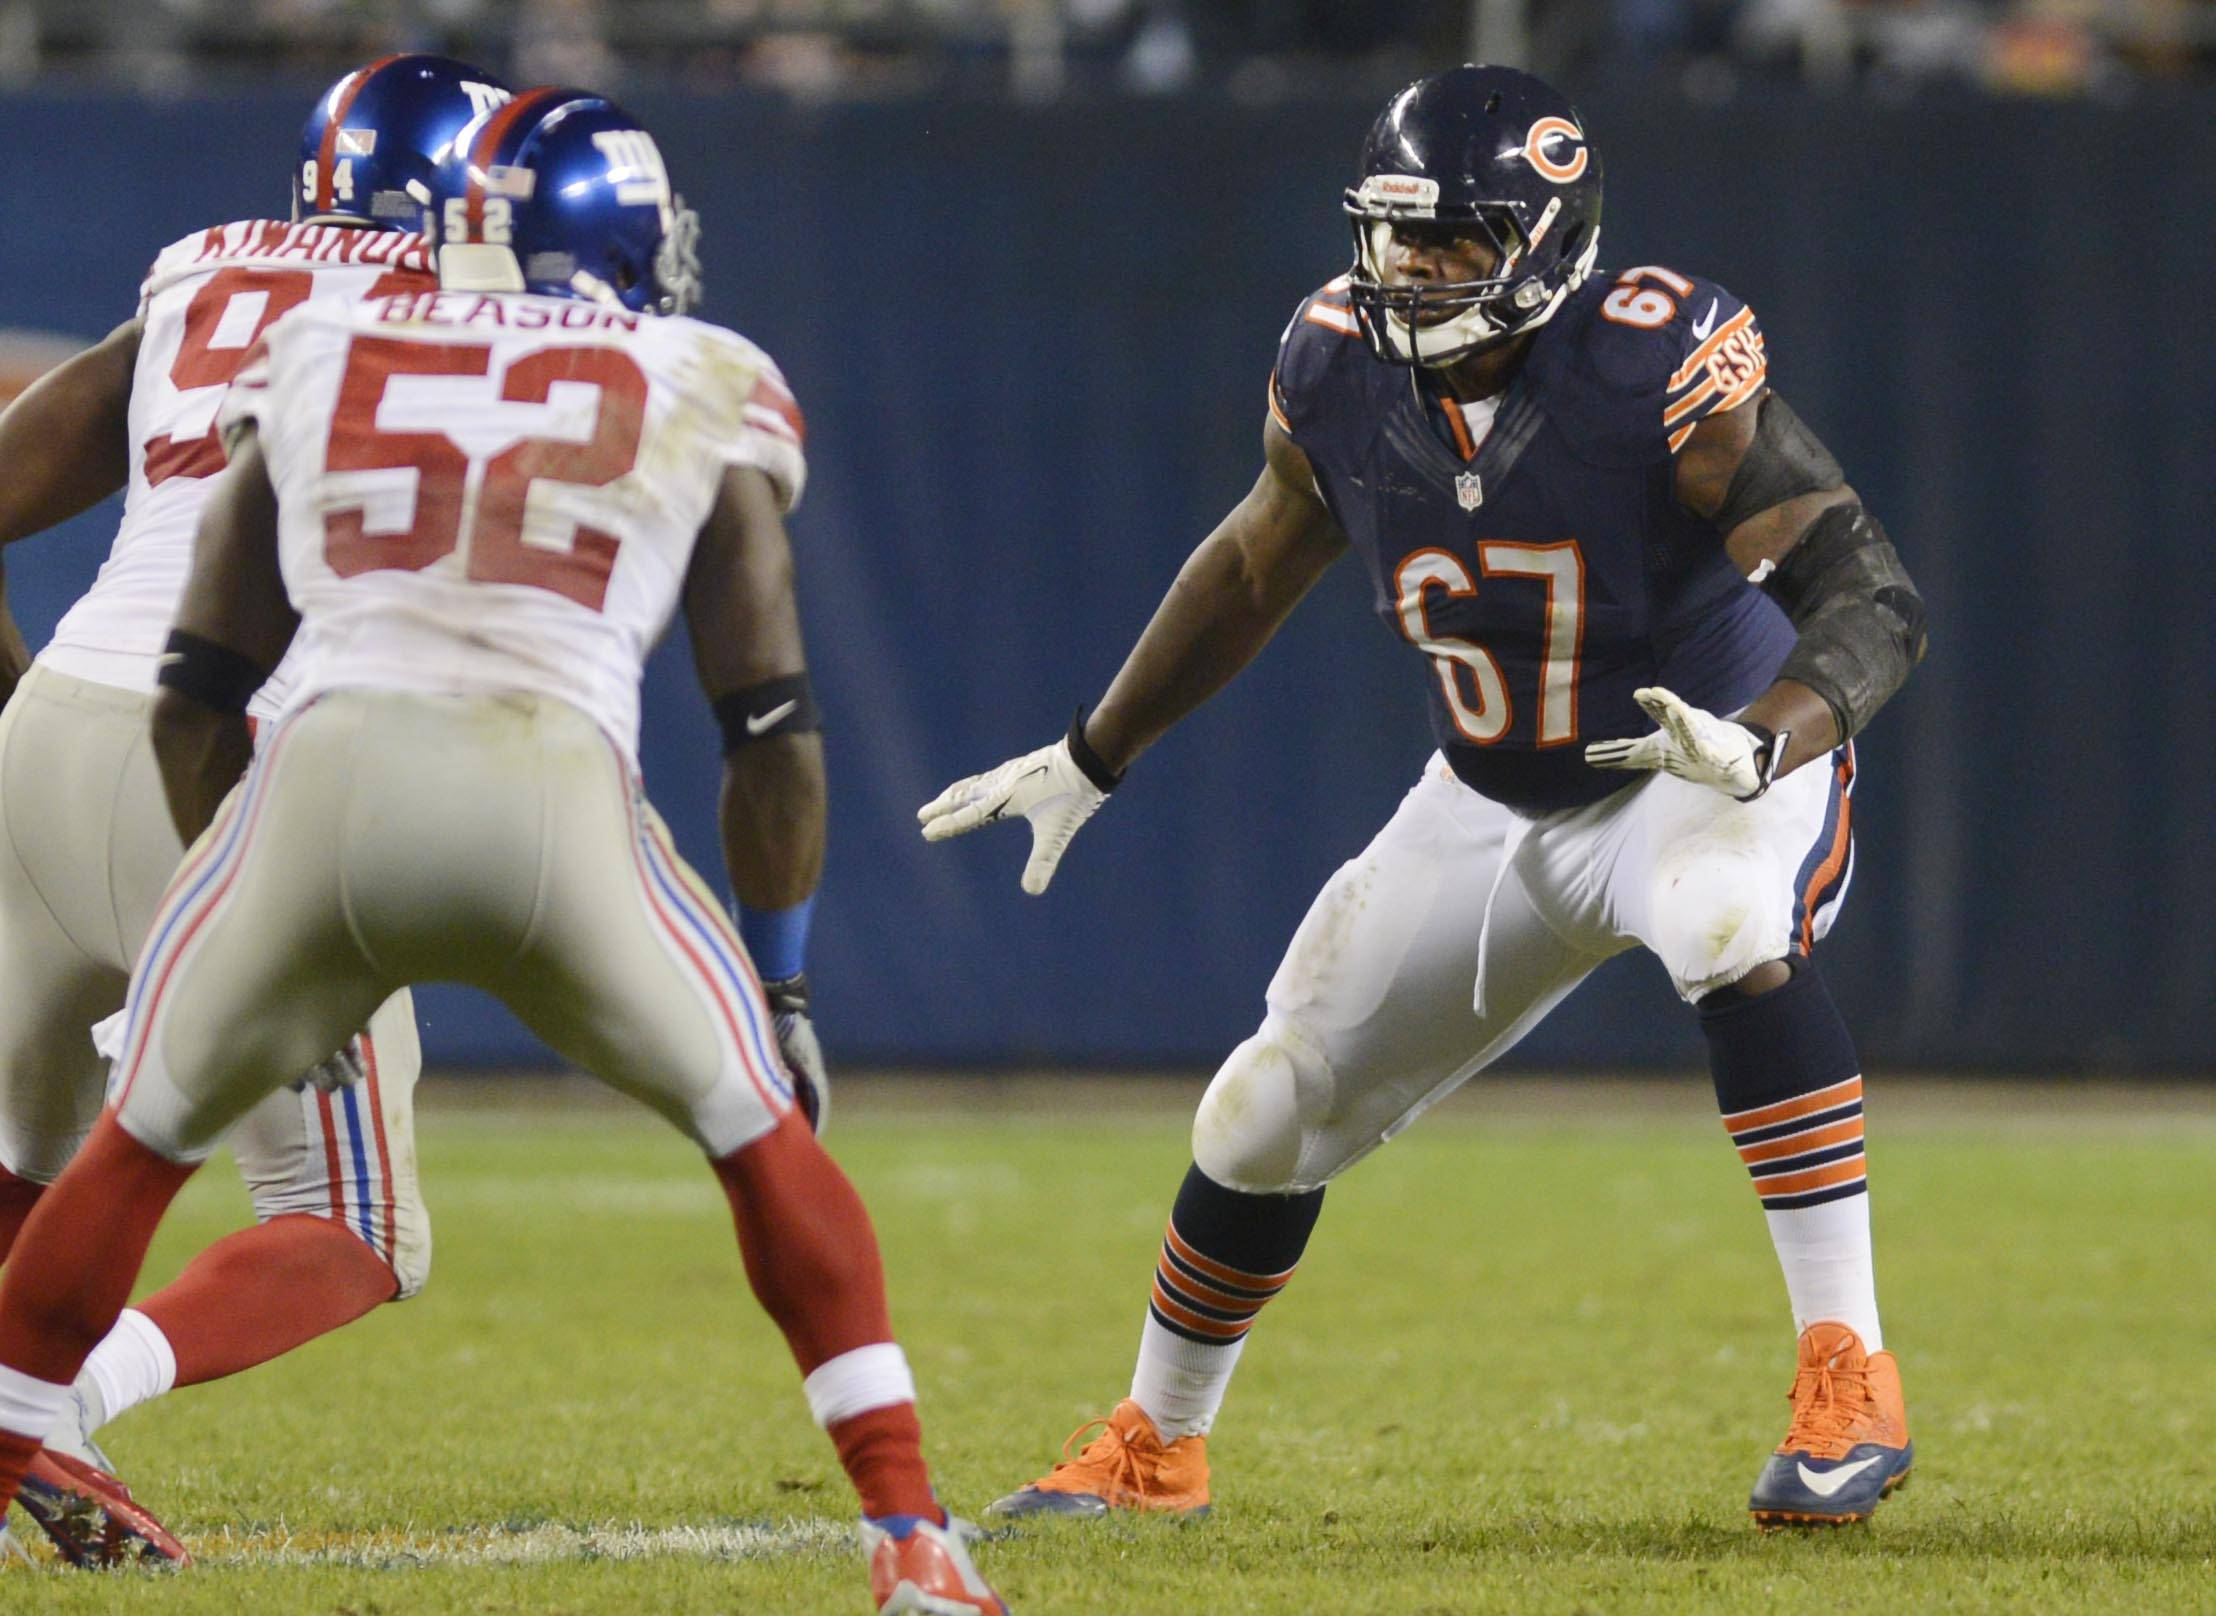 After being out since last season's finale, Bears right tackle Jordan Mills says he's ready to go for the season opener against Buffalo.